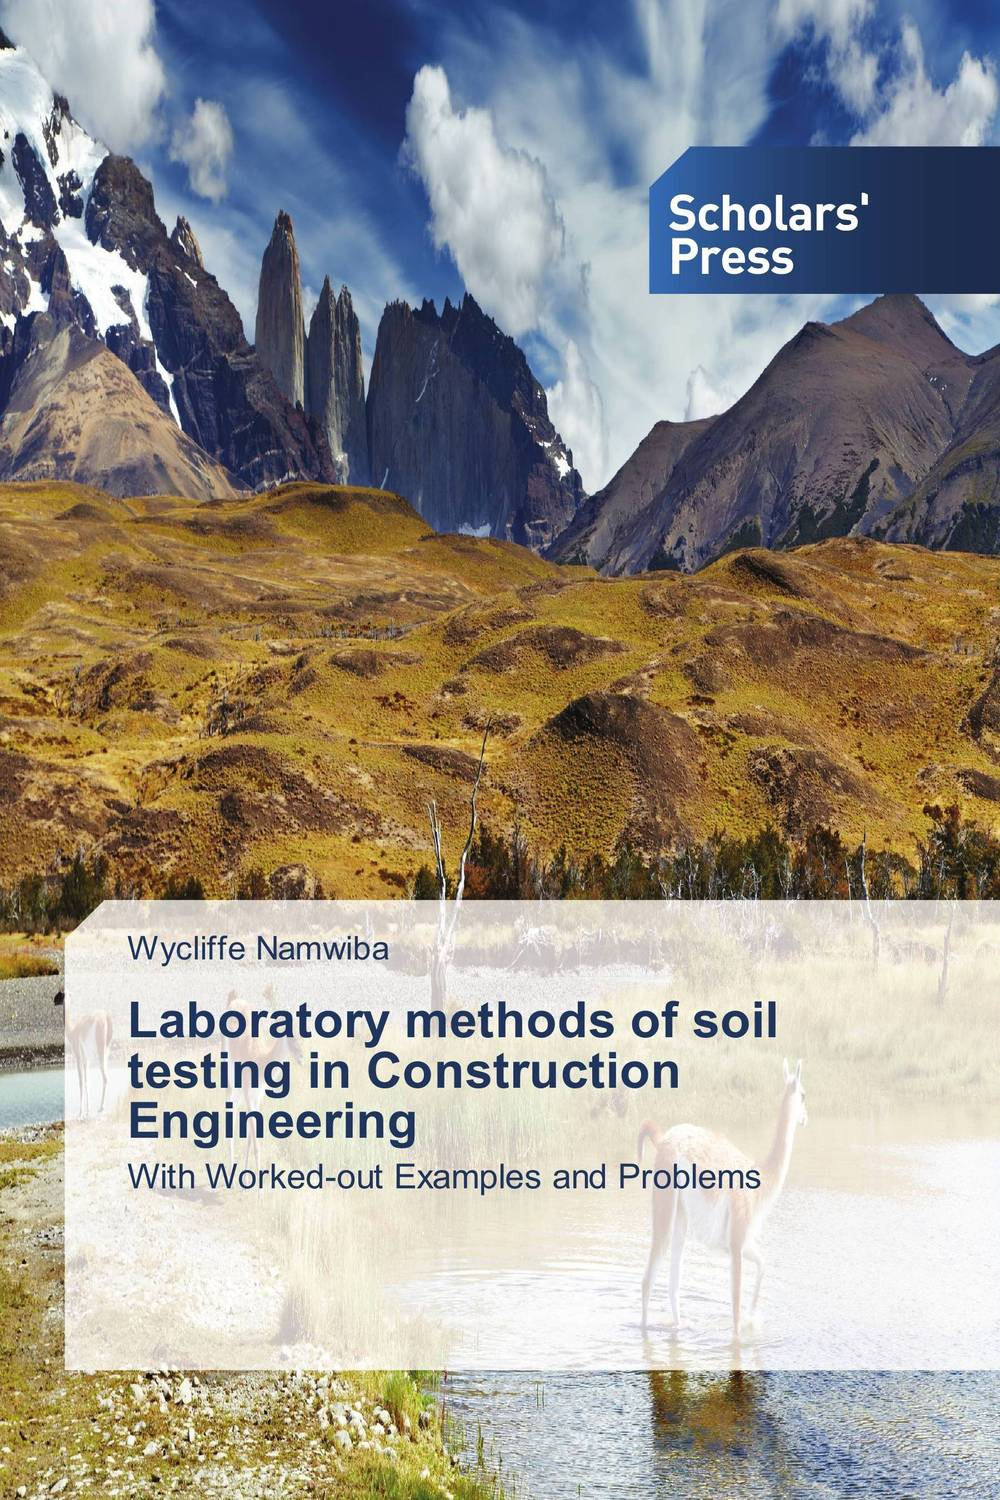 Laboratory methods of soil testing in Construction Engineering belousov a security features of banknotes and other documents methods of authentication manual денежные билеты бланки ценных бумаг и документов